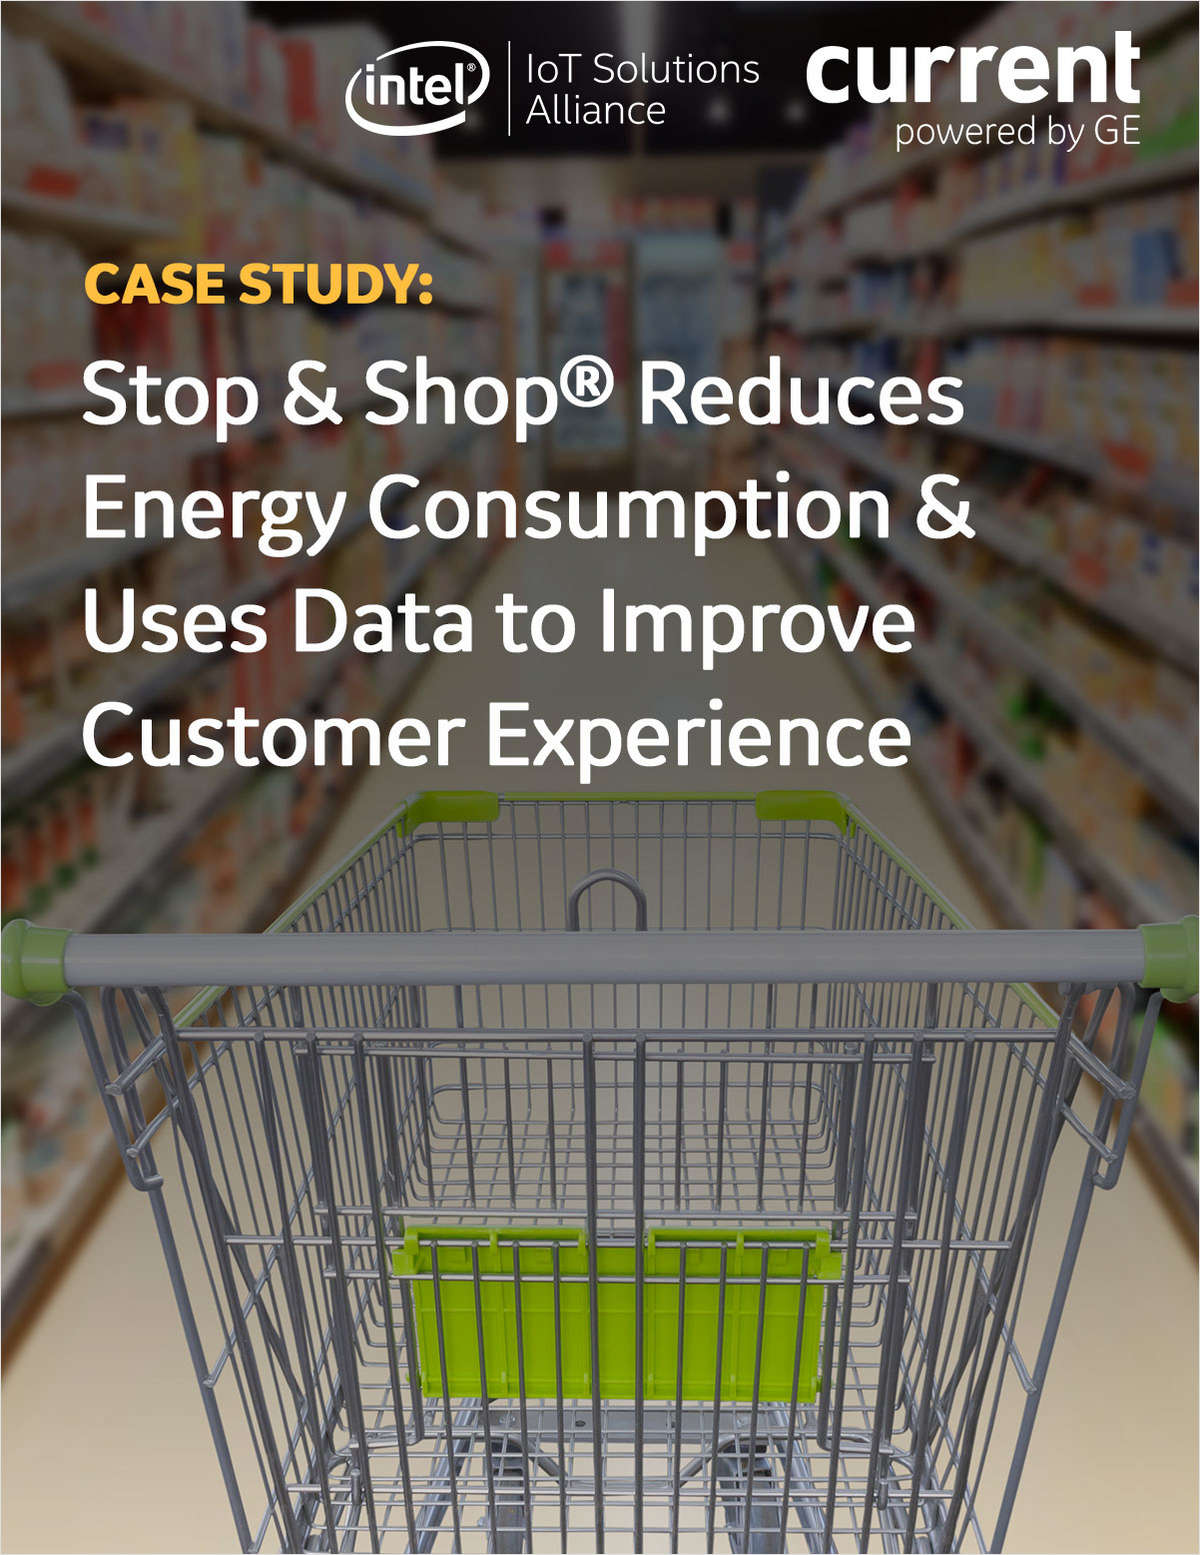 Stop & Shop Reduces Energy Consumption and Uses Data to Improve Customer Experience